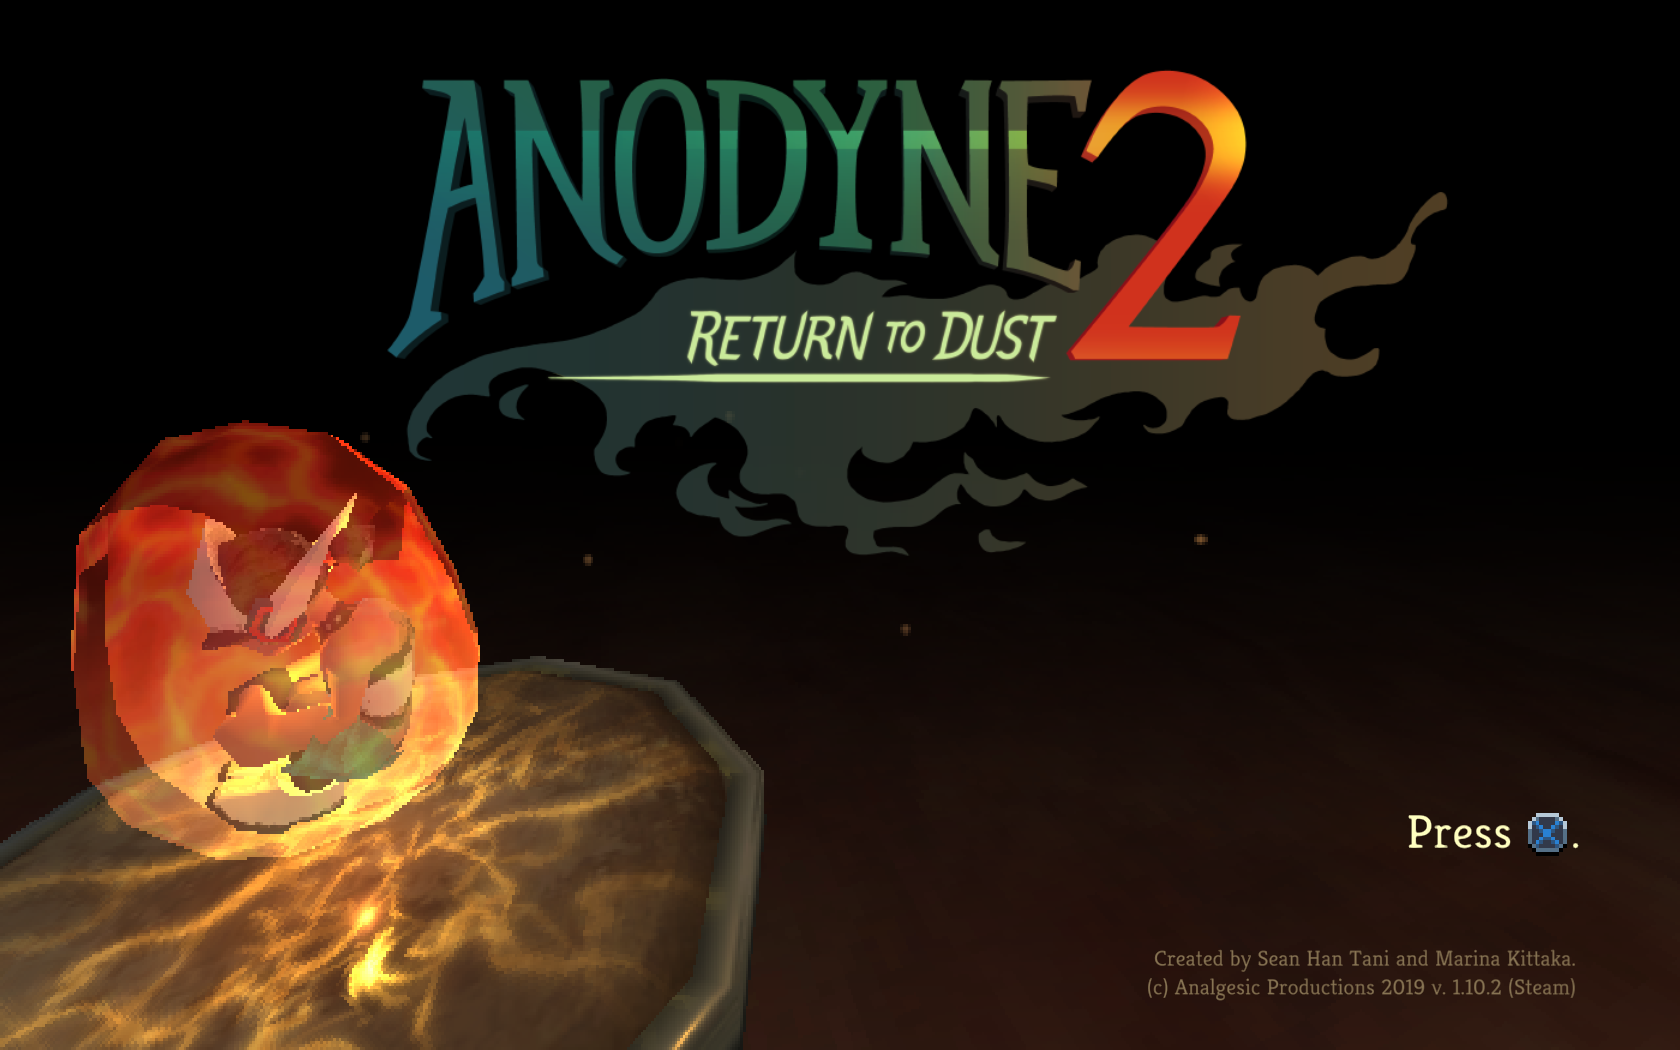 anodyne 2 return to dust computer wallpaper 74200